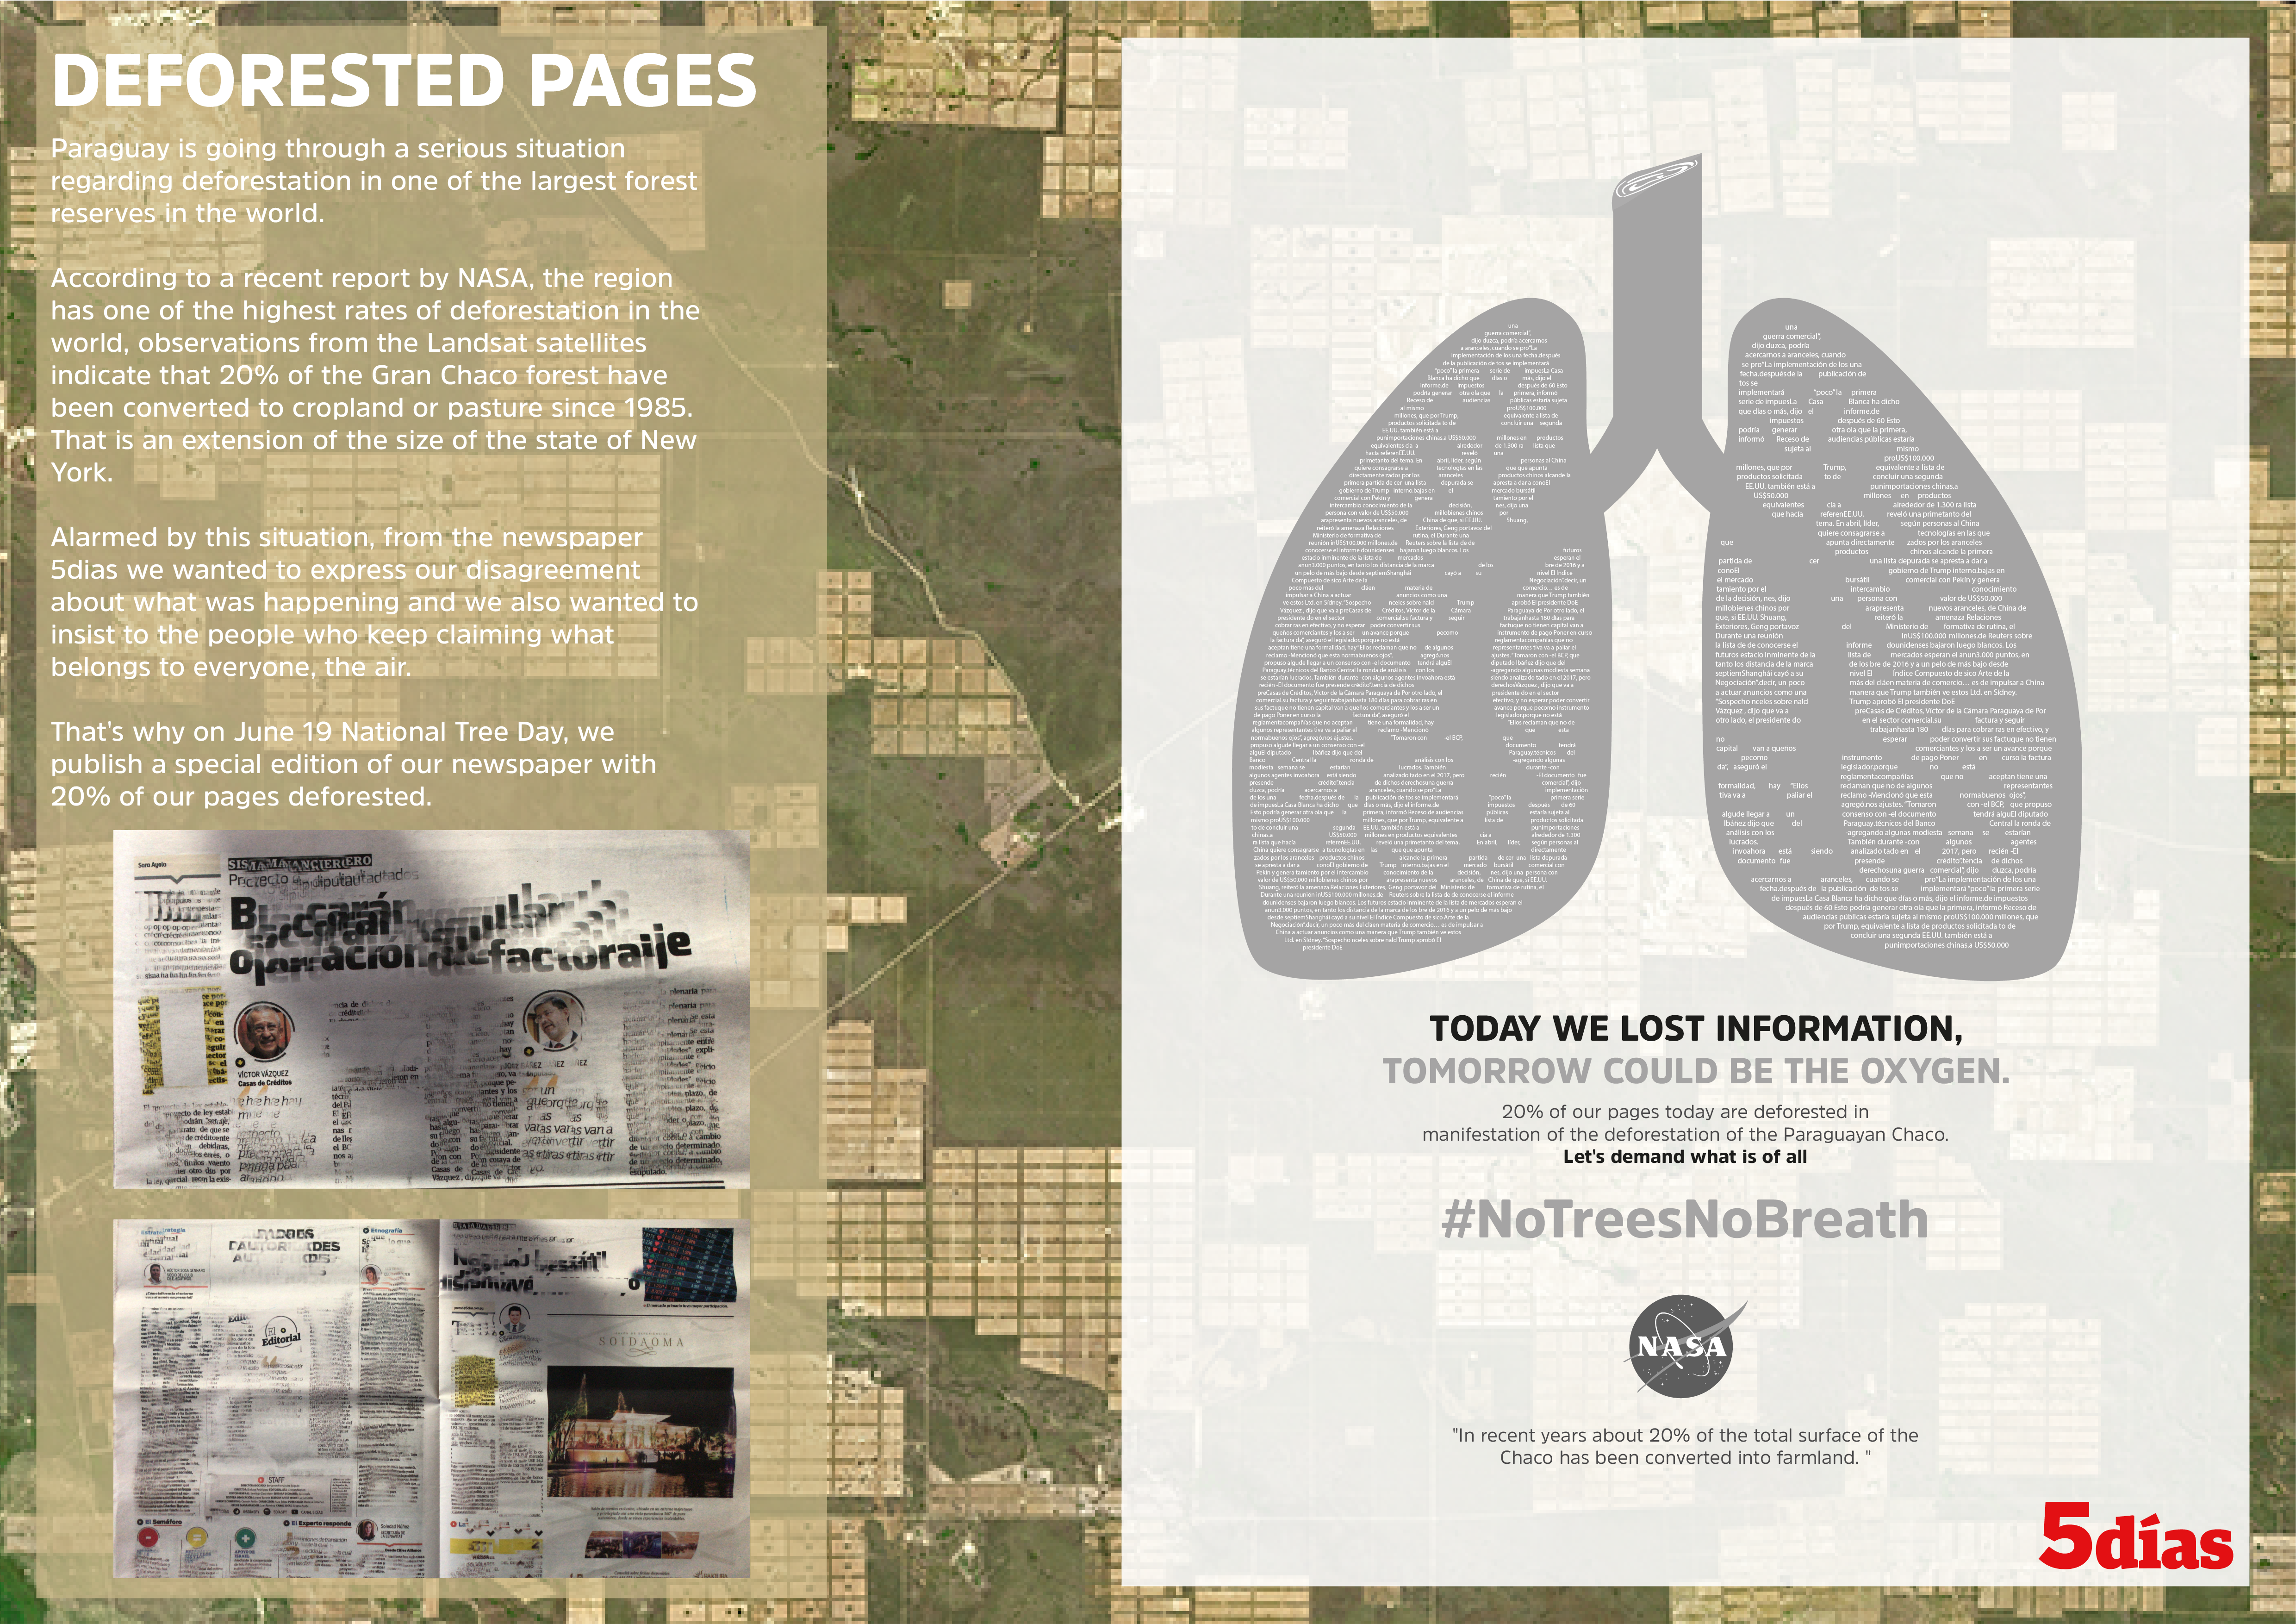 5días Direct Ad - Deforested Pages